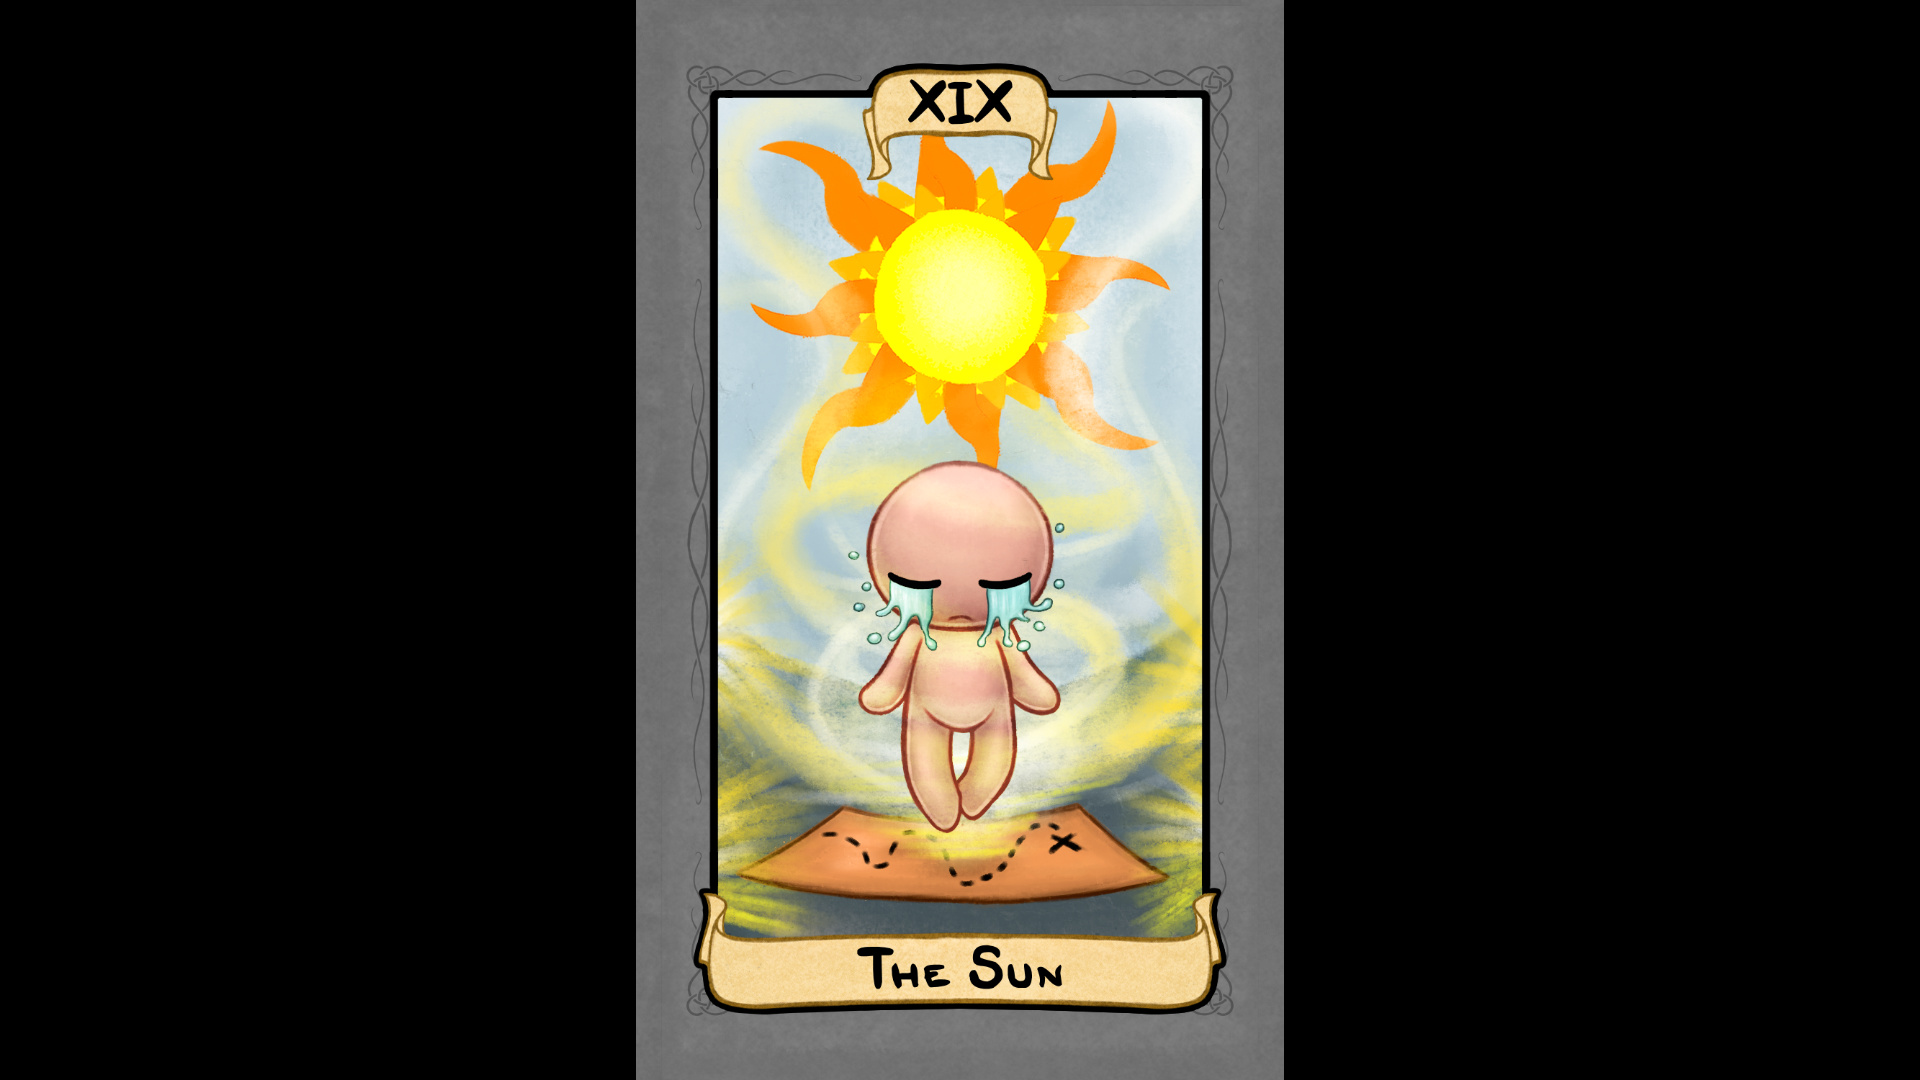 The Binding Of Isaac Rebirth Xix The Sun Steam